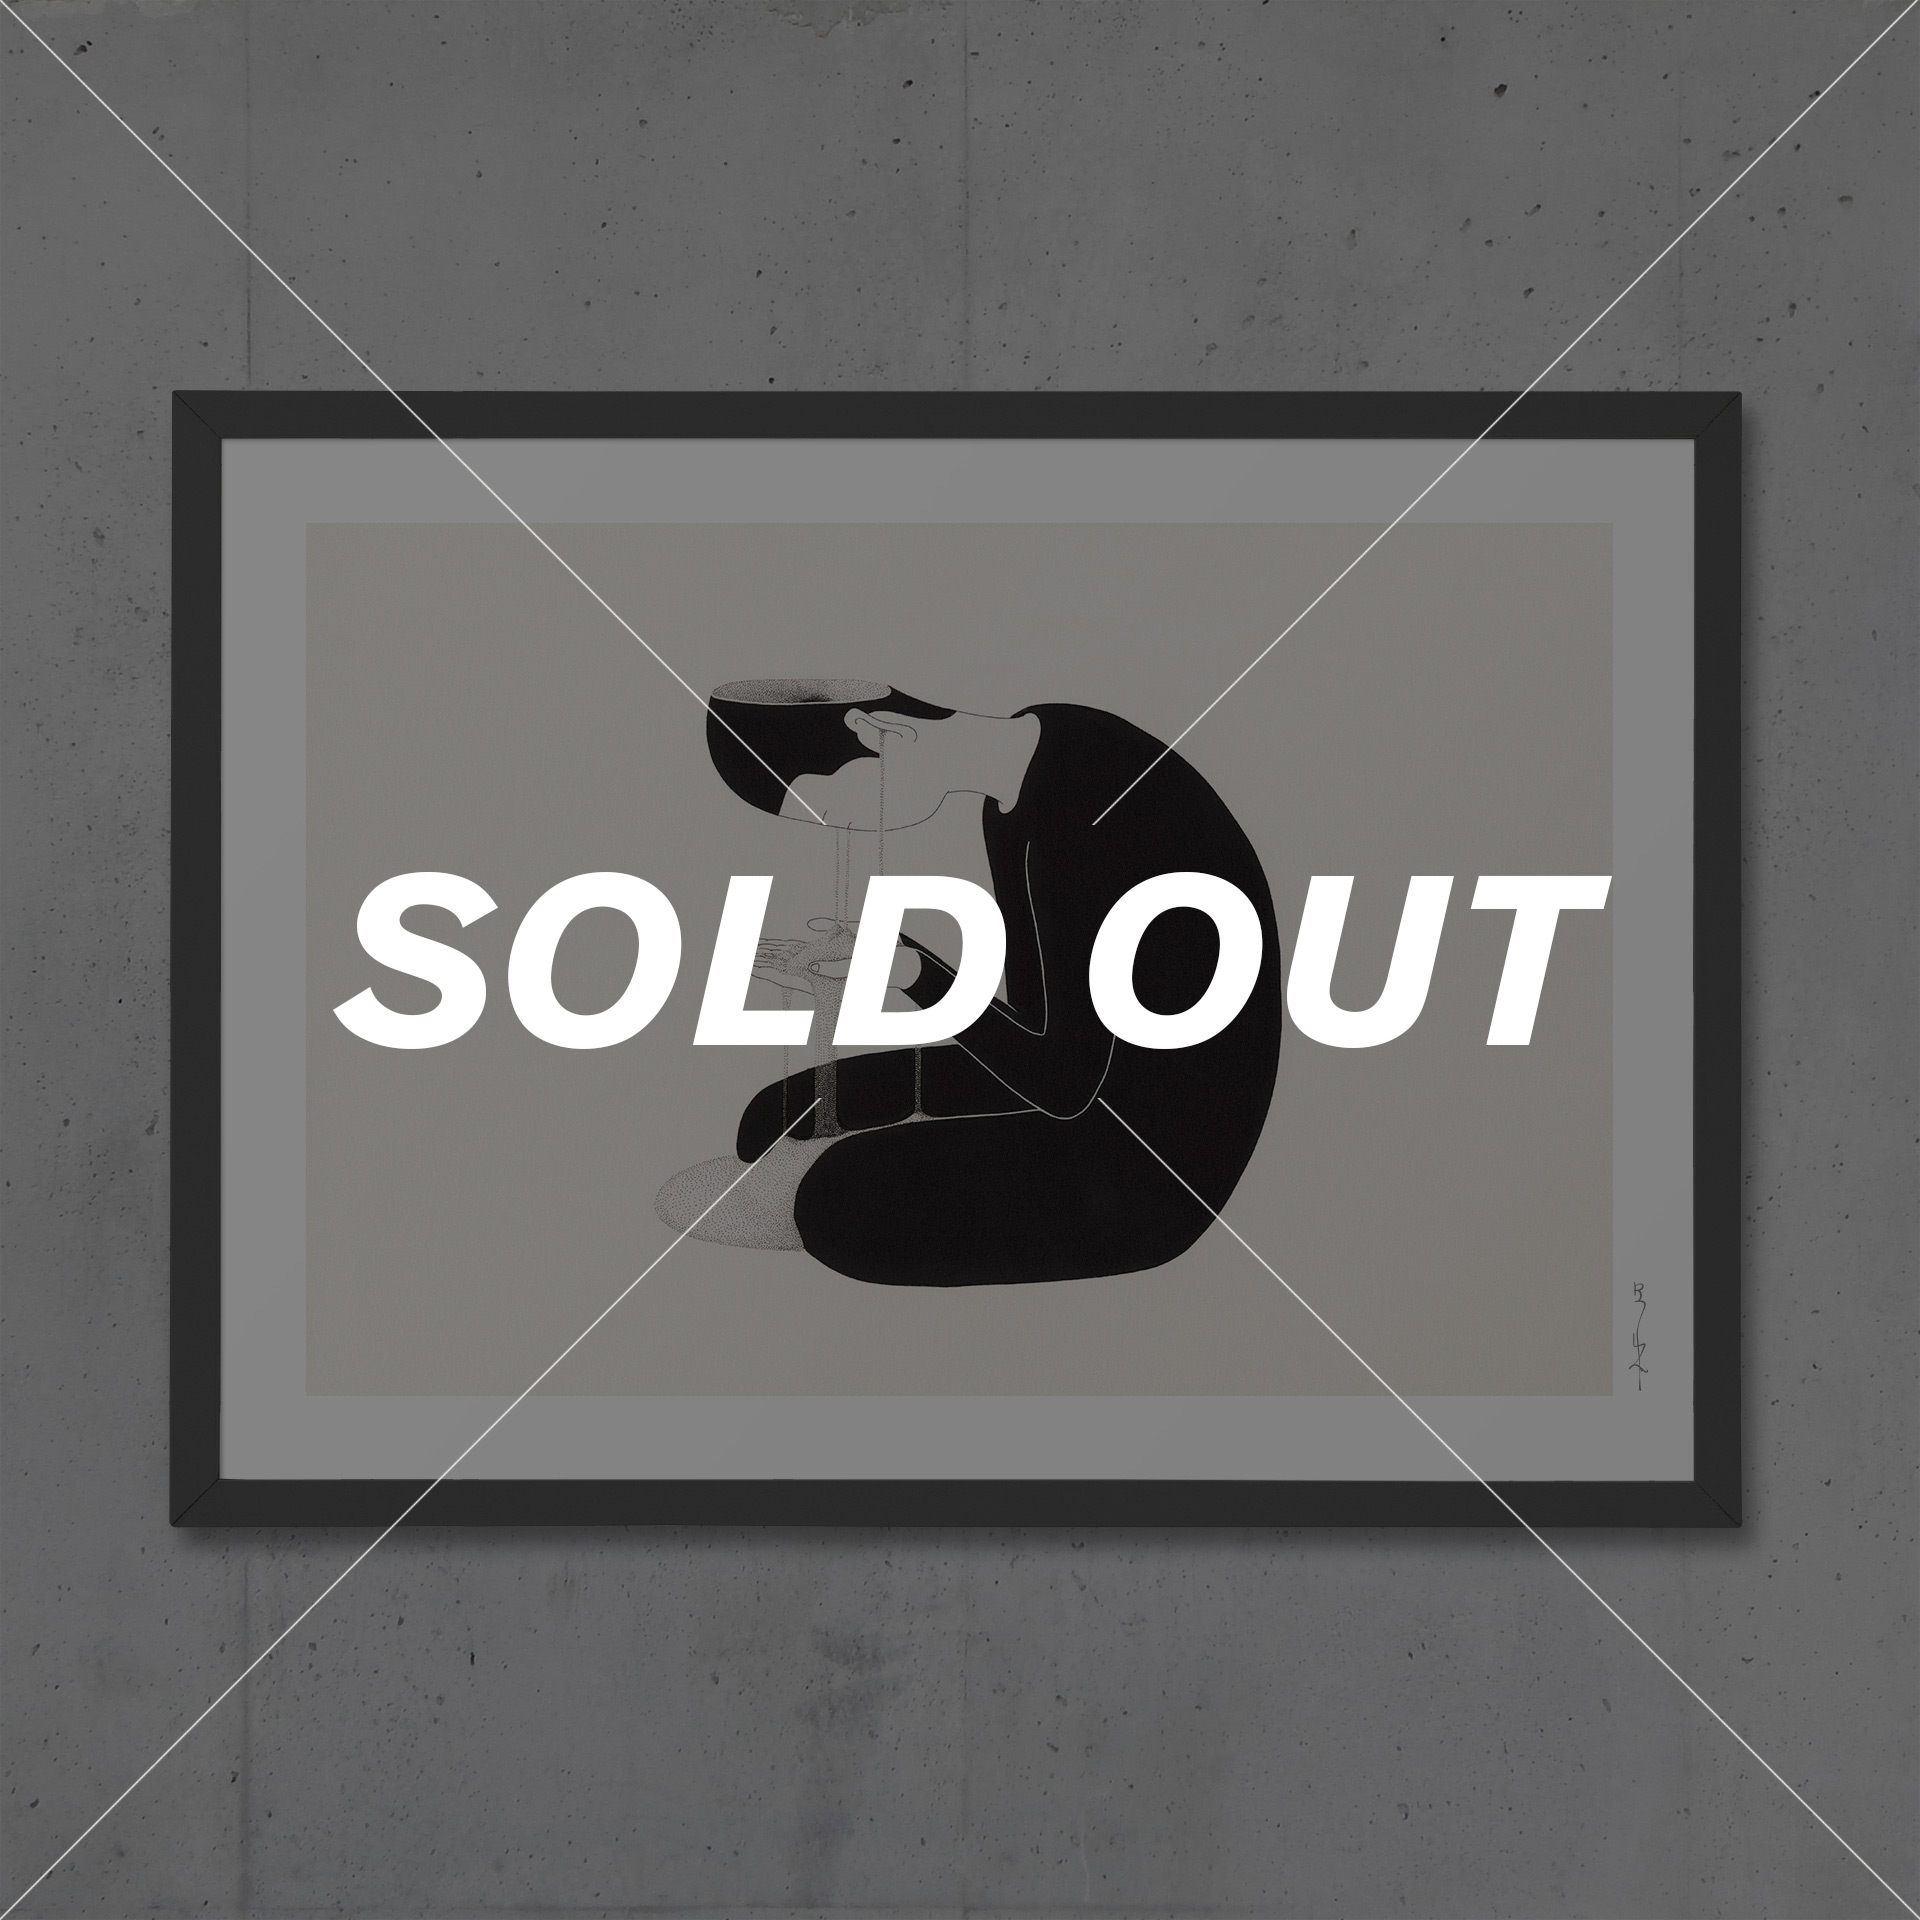 0100P_Sometimes-I'm-so-tangible_2015_PRINT_SOLDOUT.jpg